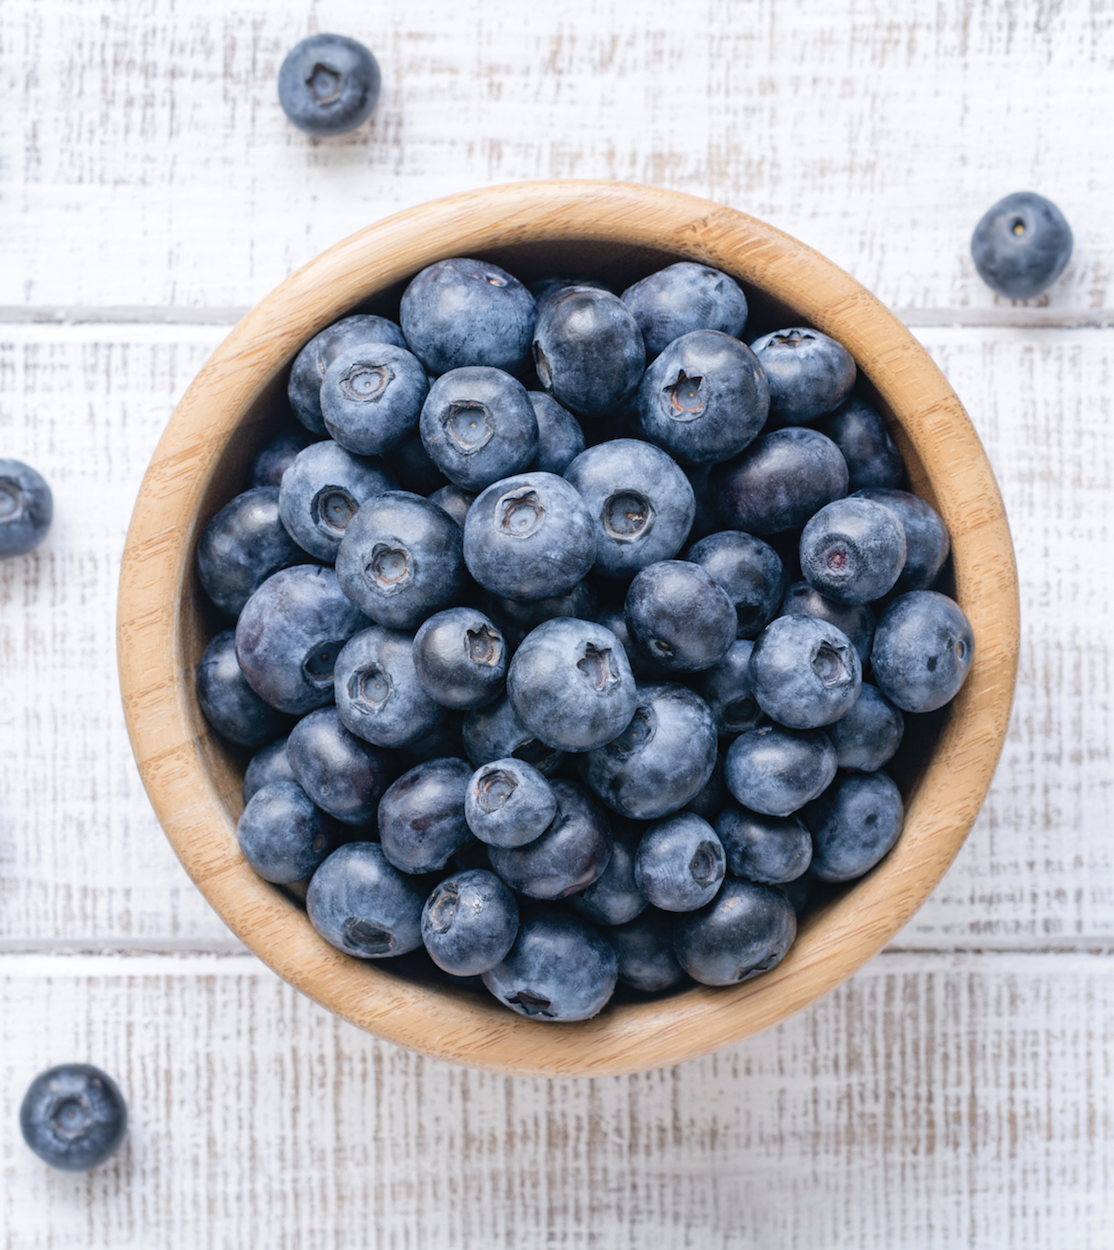 12 Foods to Help You Focus